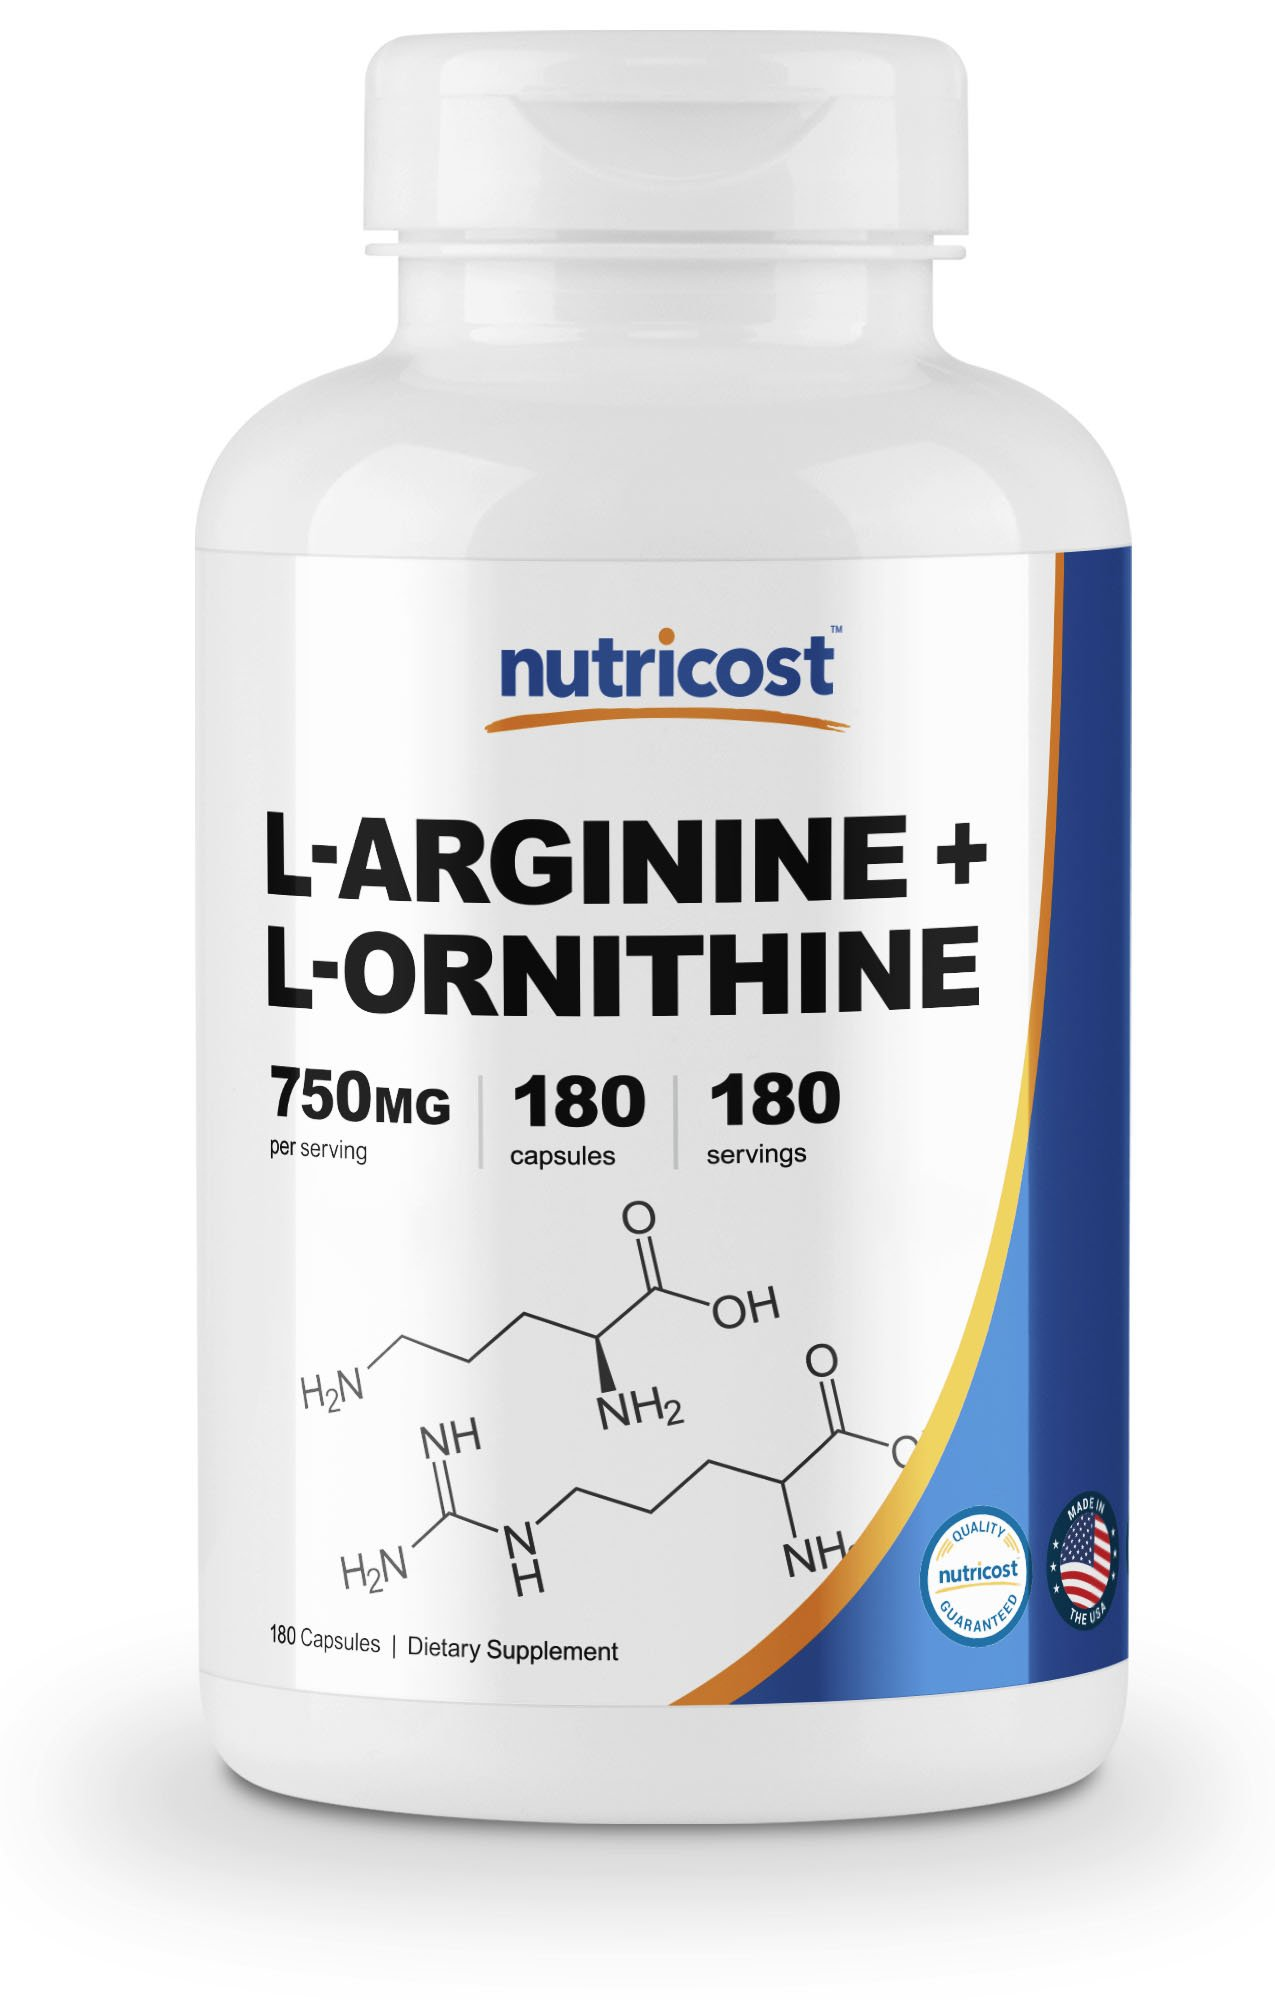 Nutricost L-Arginine L-Ornithine 750mg; 180 Capsules by Nutricost